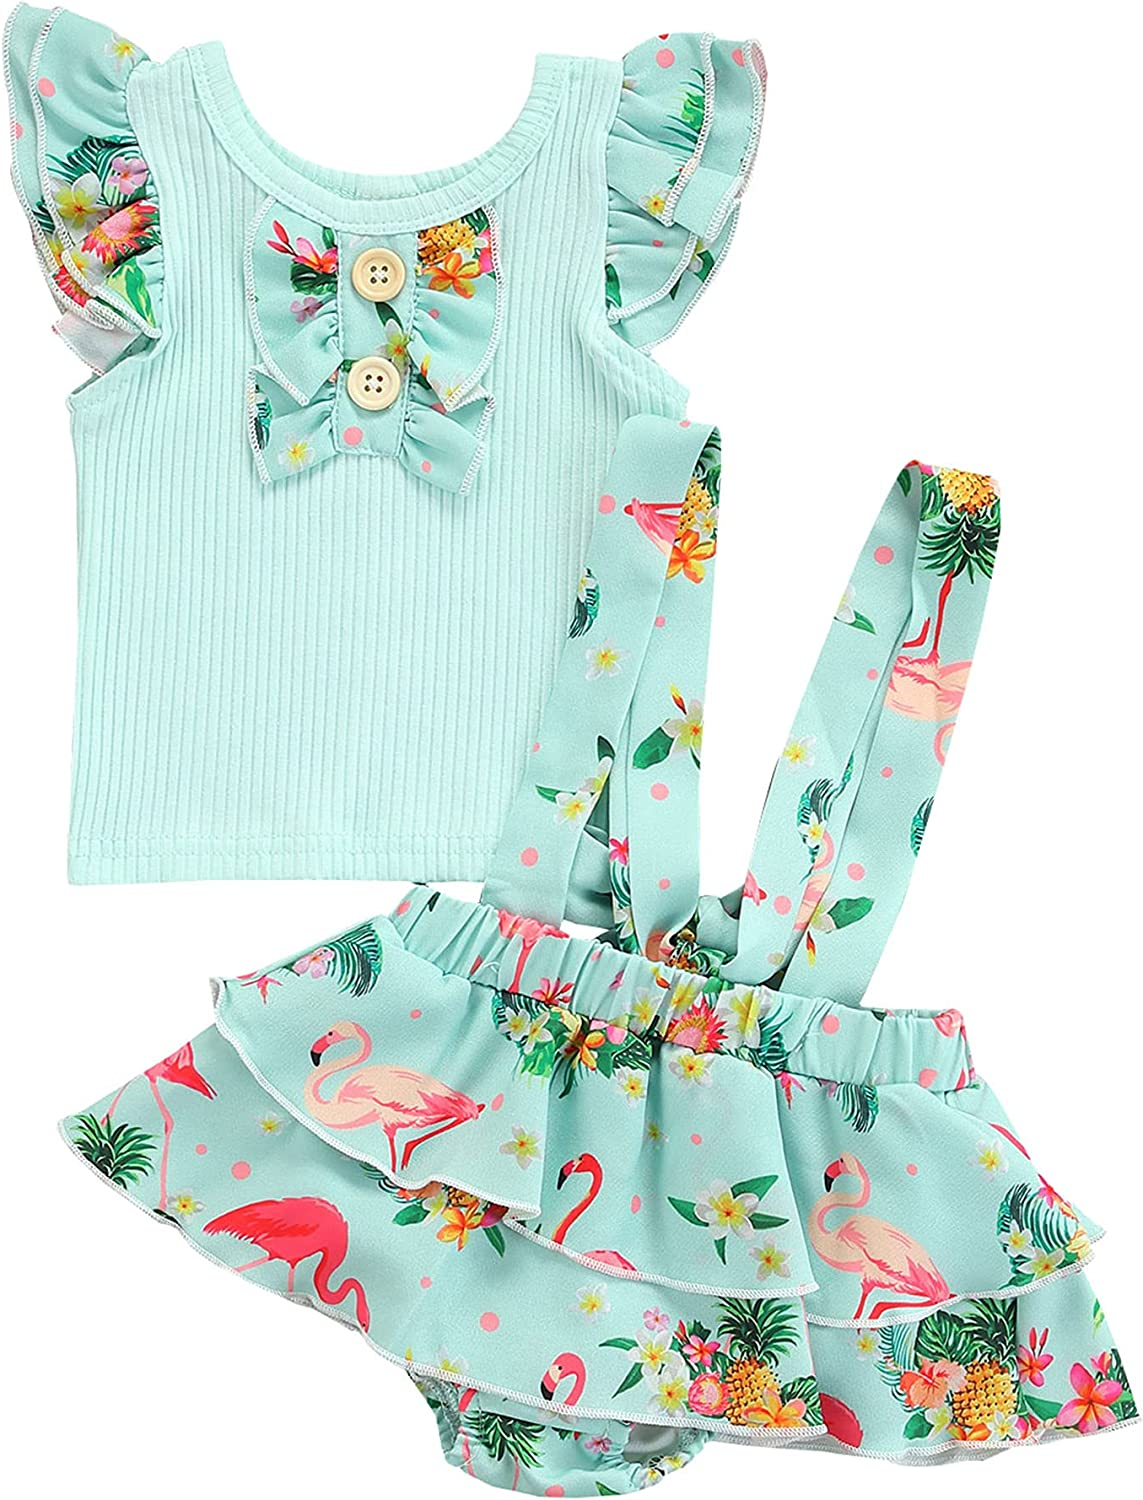 Infant Baby Girl Summer Shorts Set Ruffle Sleeveless T-Shirt and Suspender Shorts Outfit Floral Rainbow Print Set